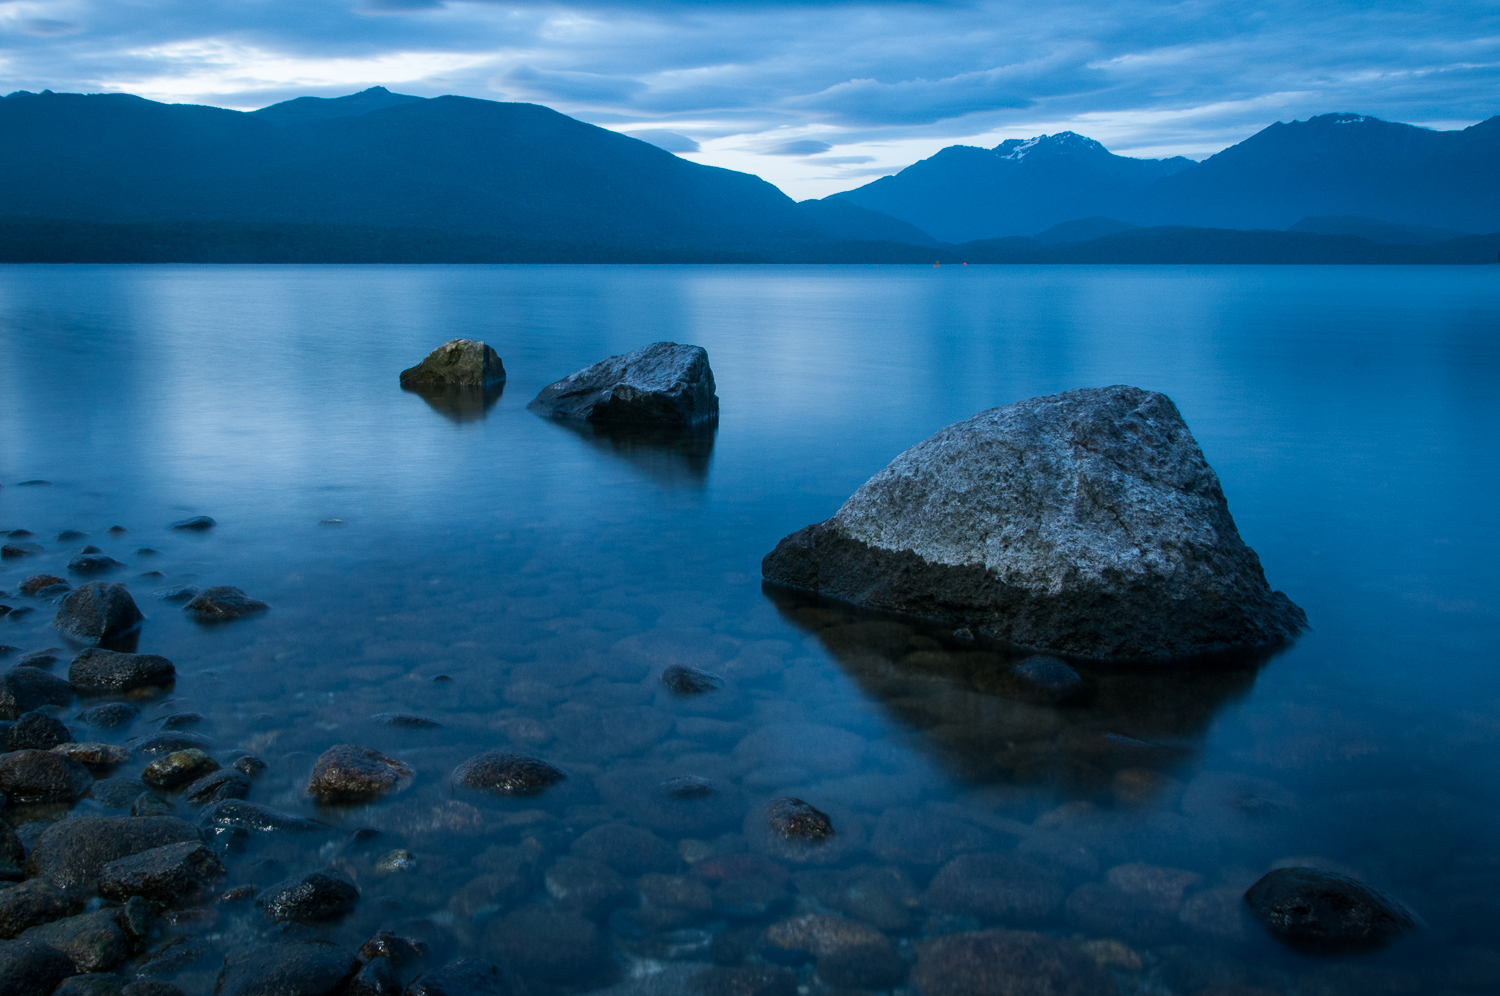 Rocks on Lake Te Anau